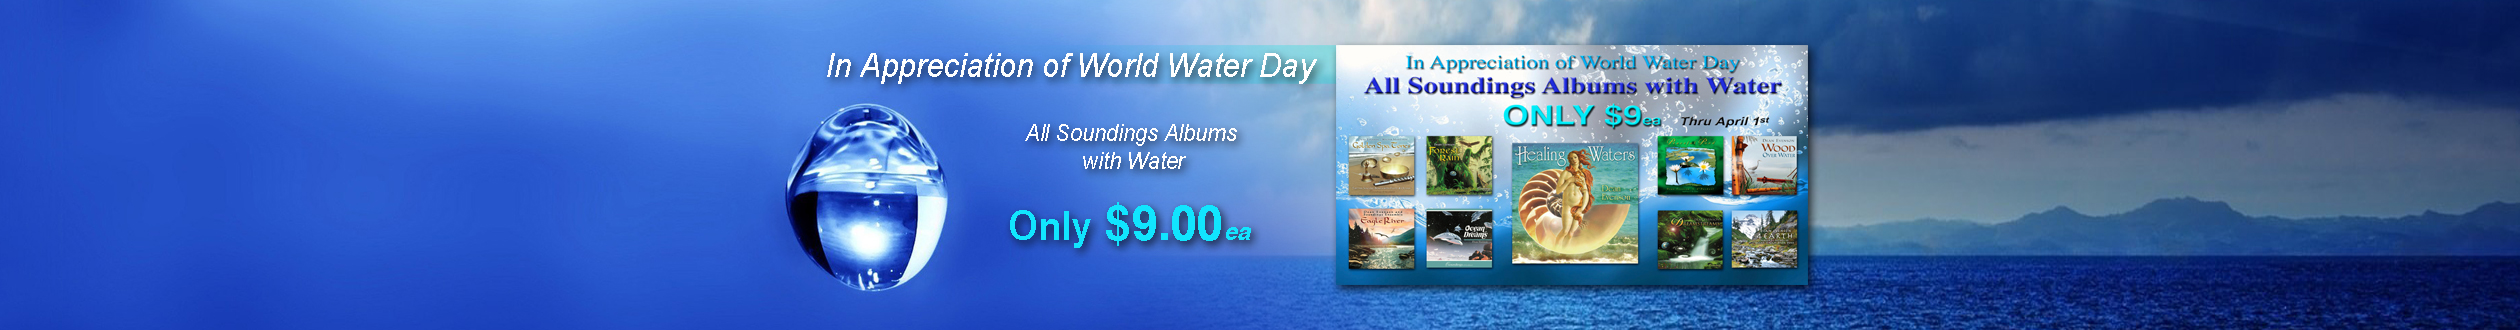 World-Water-Day-Water-Albums-Special-Slide_number4_edited-2